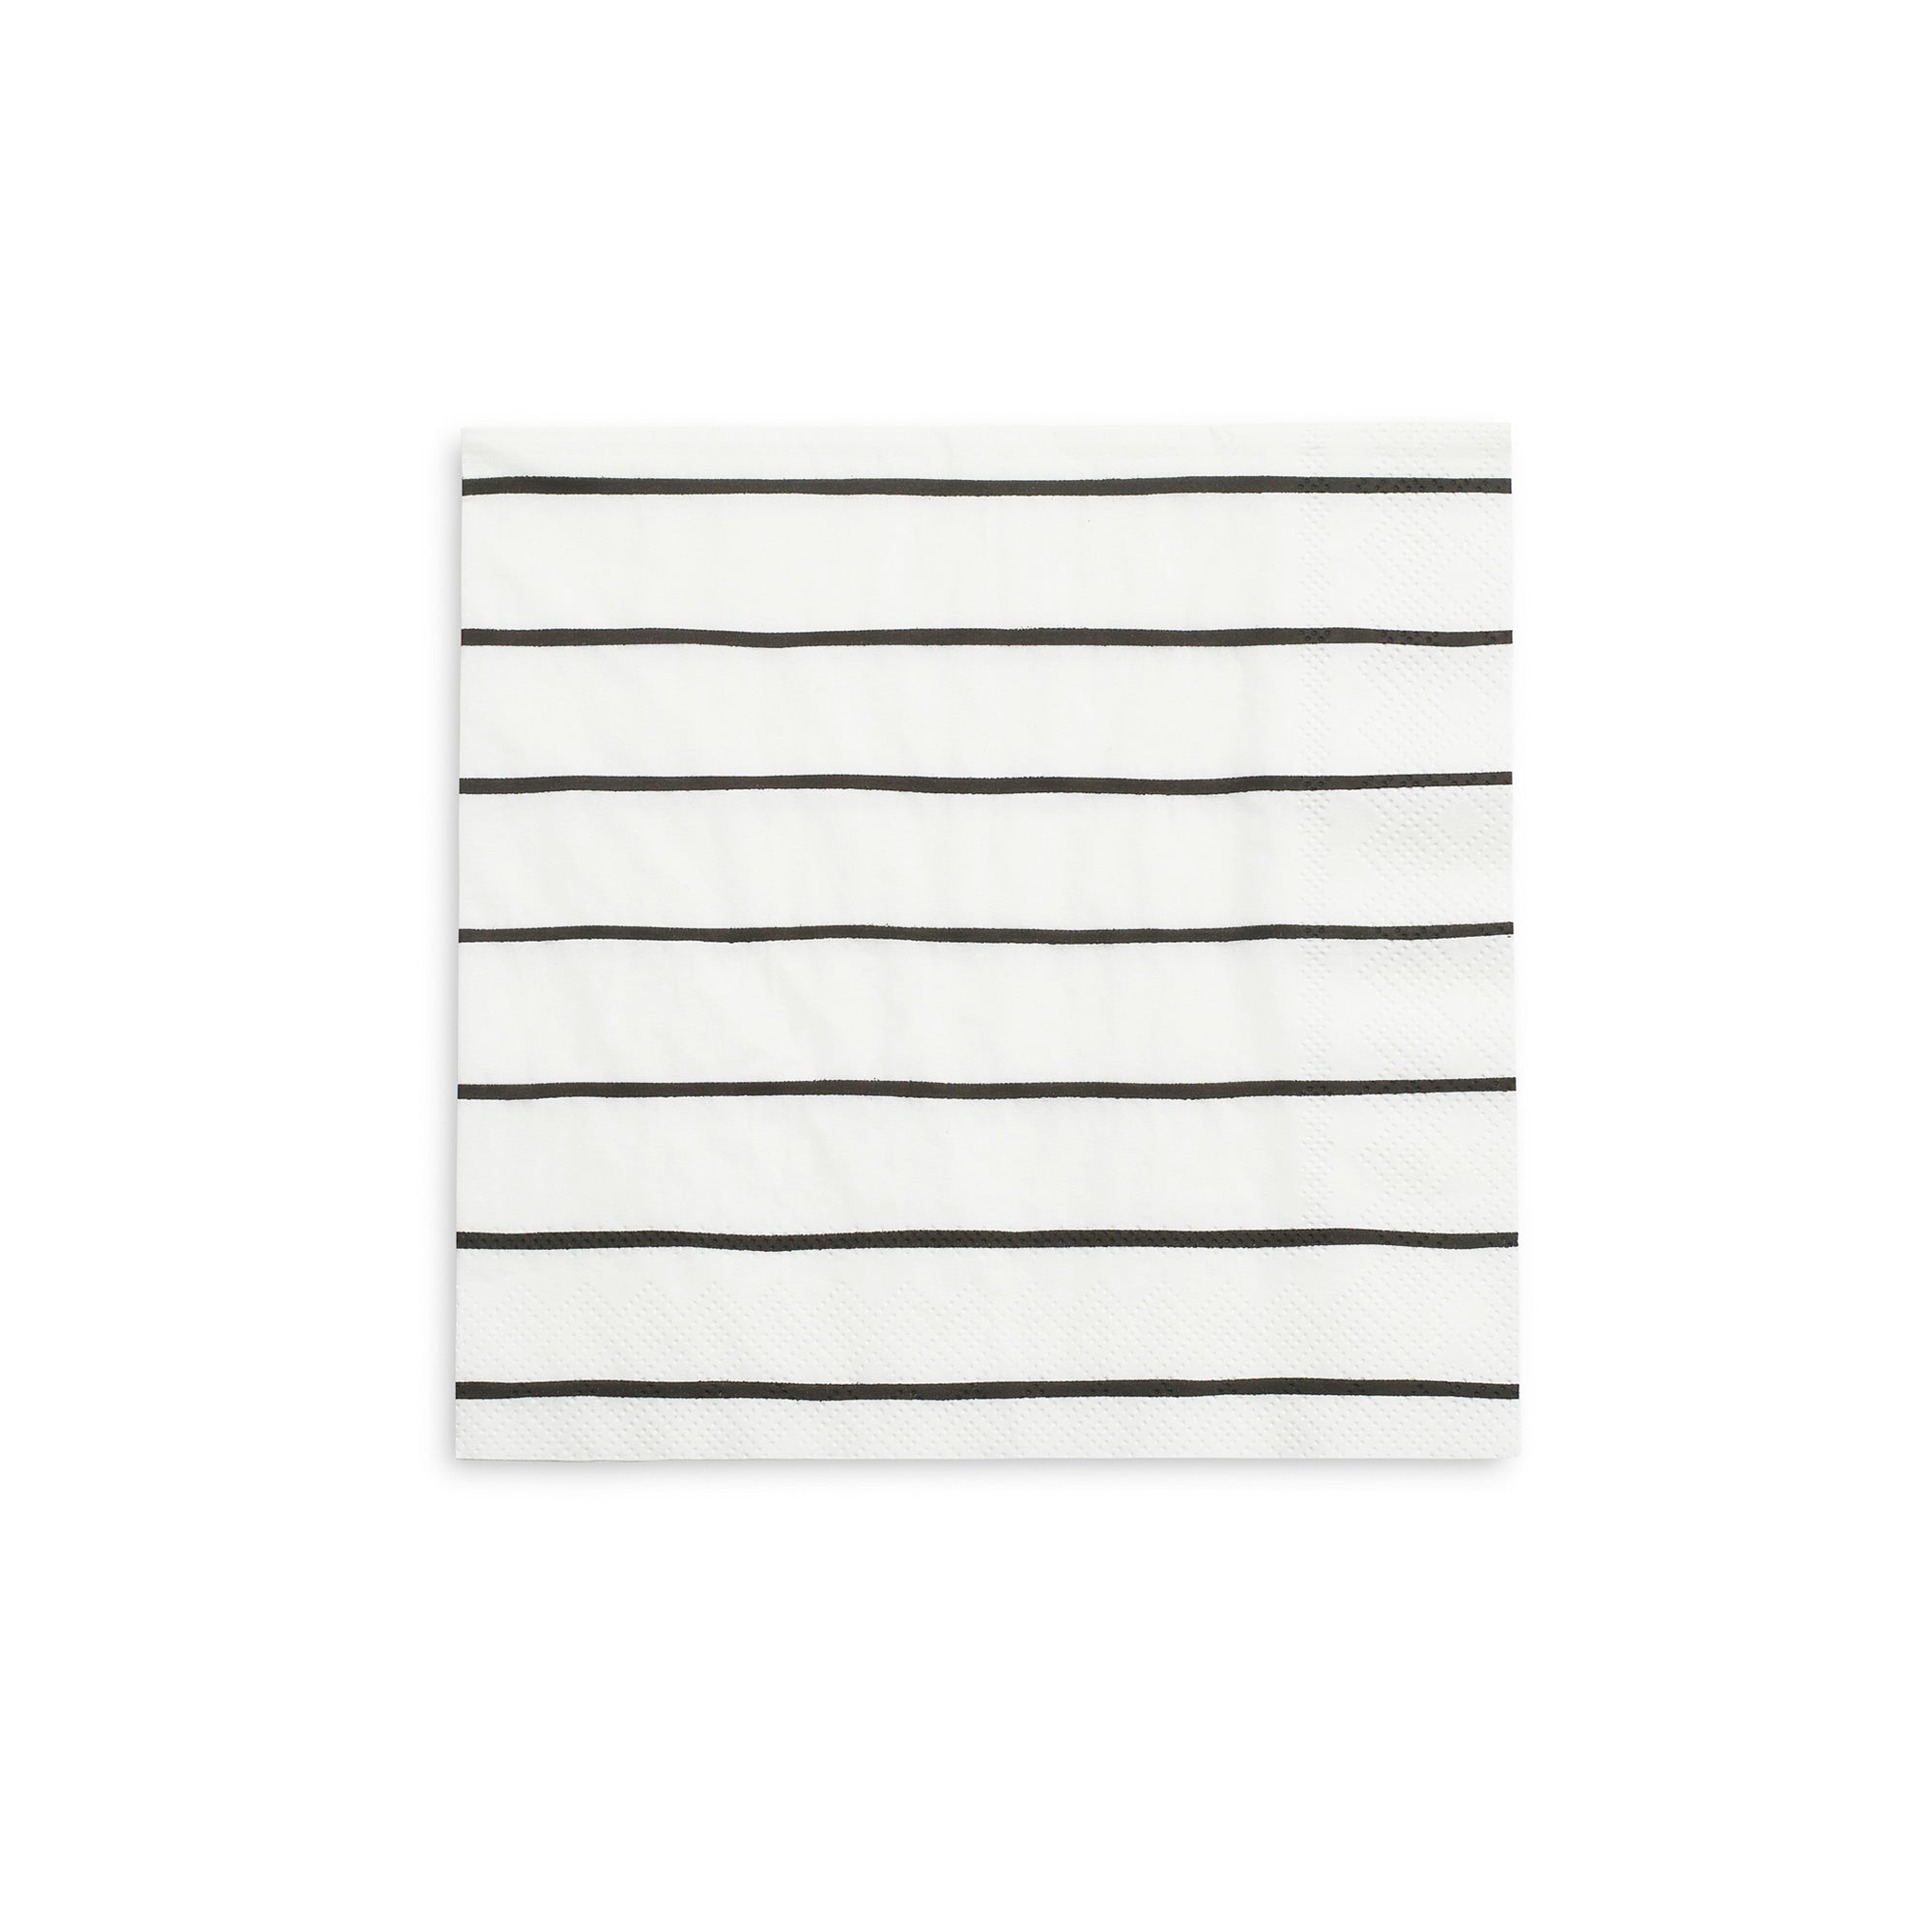 Ink Frenchie Striped Large Napkins